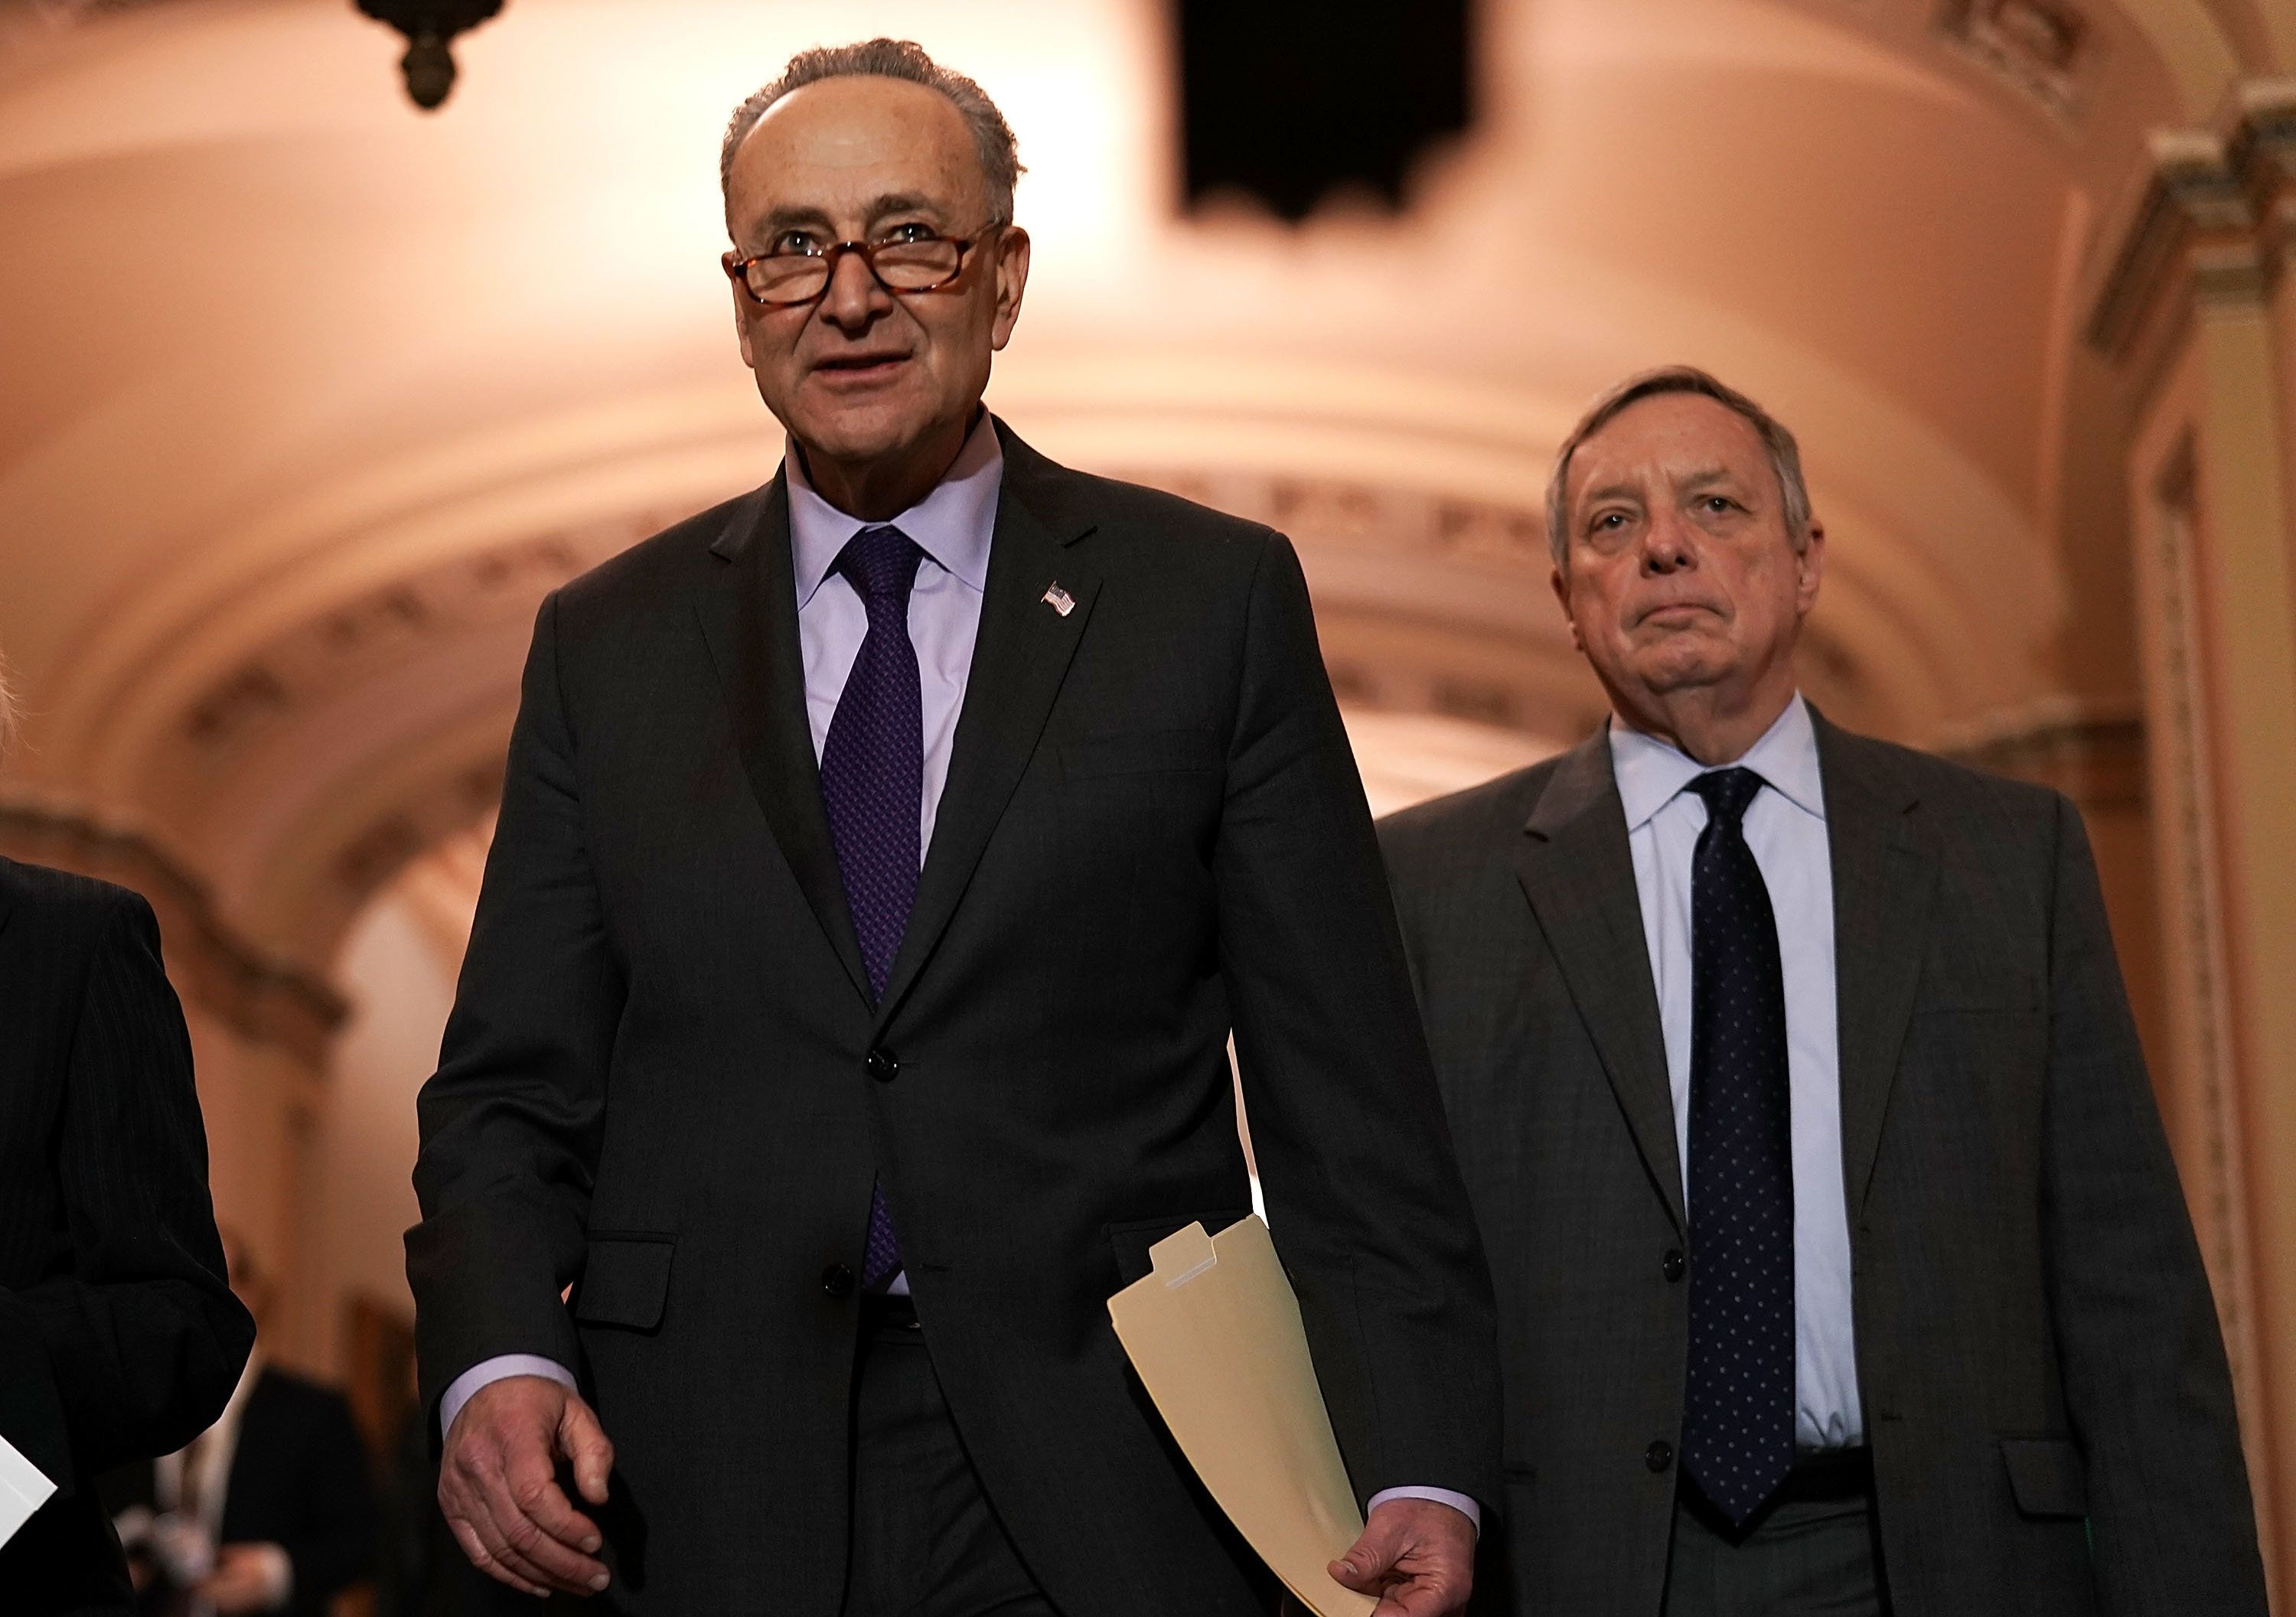 WASHINGTON, DC - JANUARY 17:  U.S. Senate Minority Leader Sen. Chuck Schumer (D-NY) (L) and Senate Minority Whip Sen. Dick Durbin (D-IL) (R) approach the podium to speak to members of the media after a Senate Democratic Policy Luncheon January 17, 2018 at the Capitol in Washington, DC. Senate Democrats held the weekly luncheon to discuss Democratic agenda.  (Photo by Alex Wong/Getty Images)